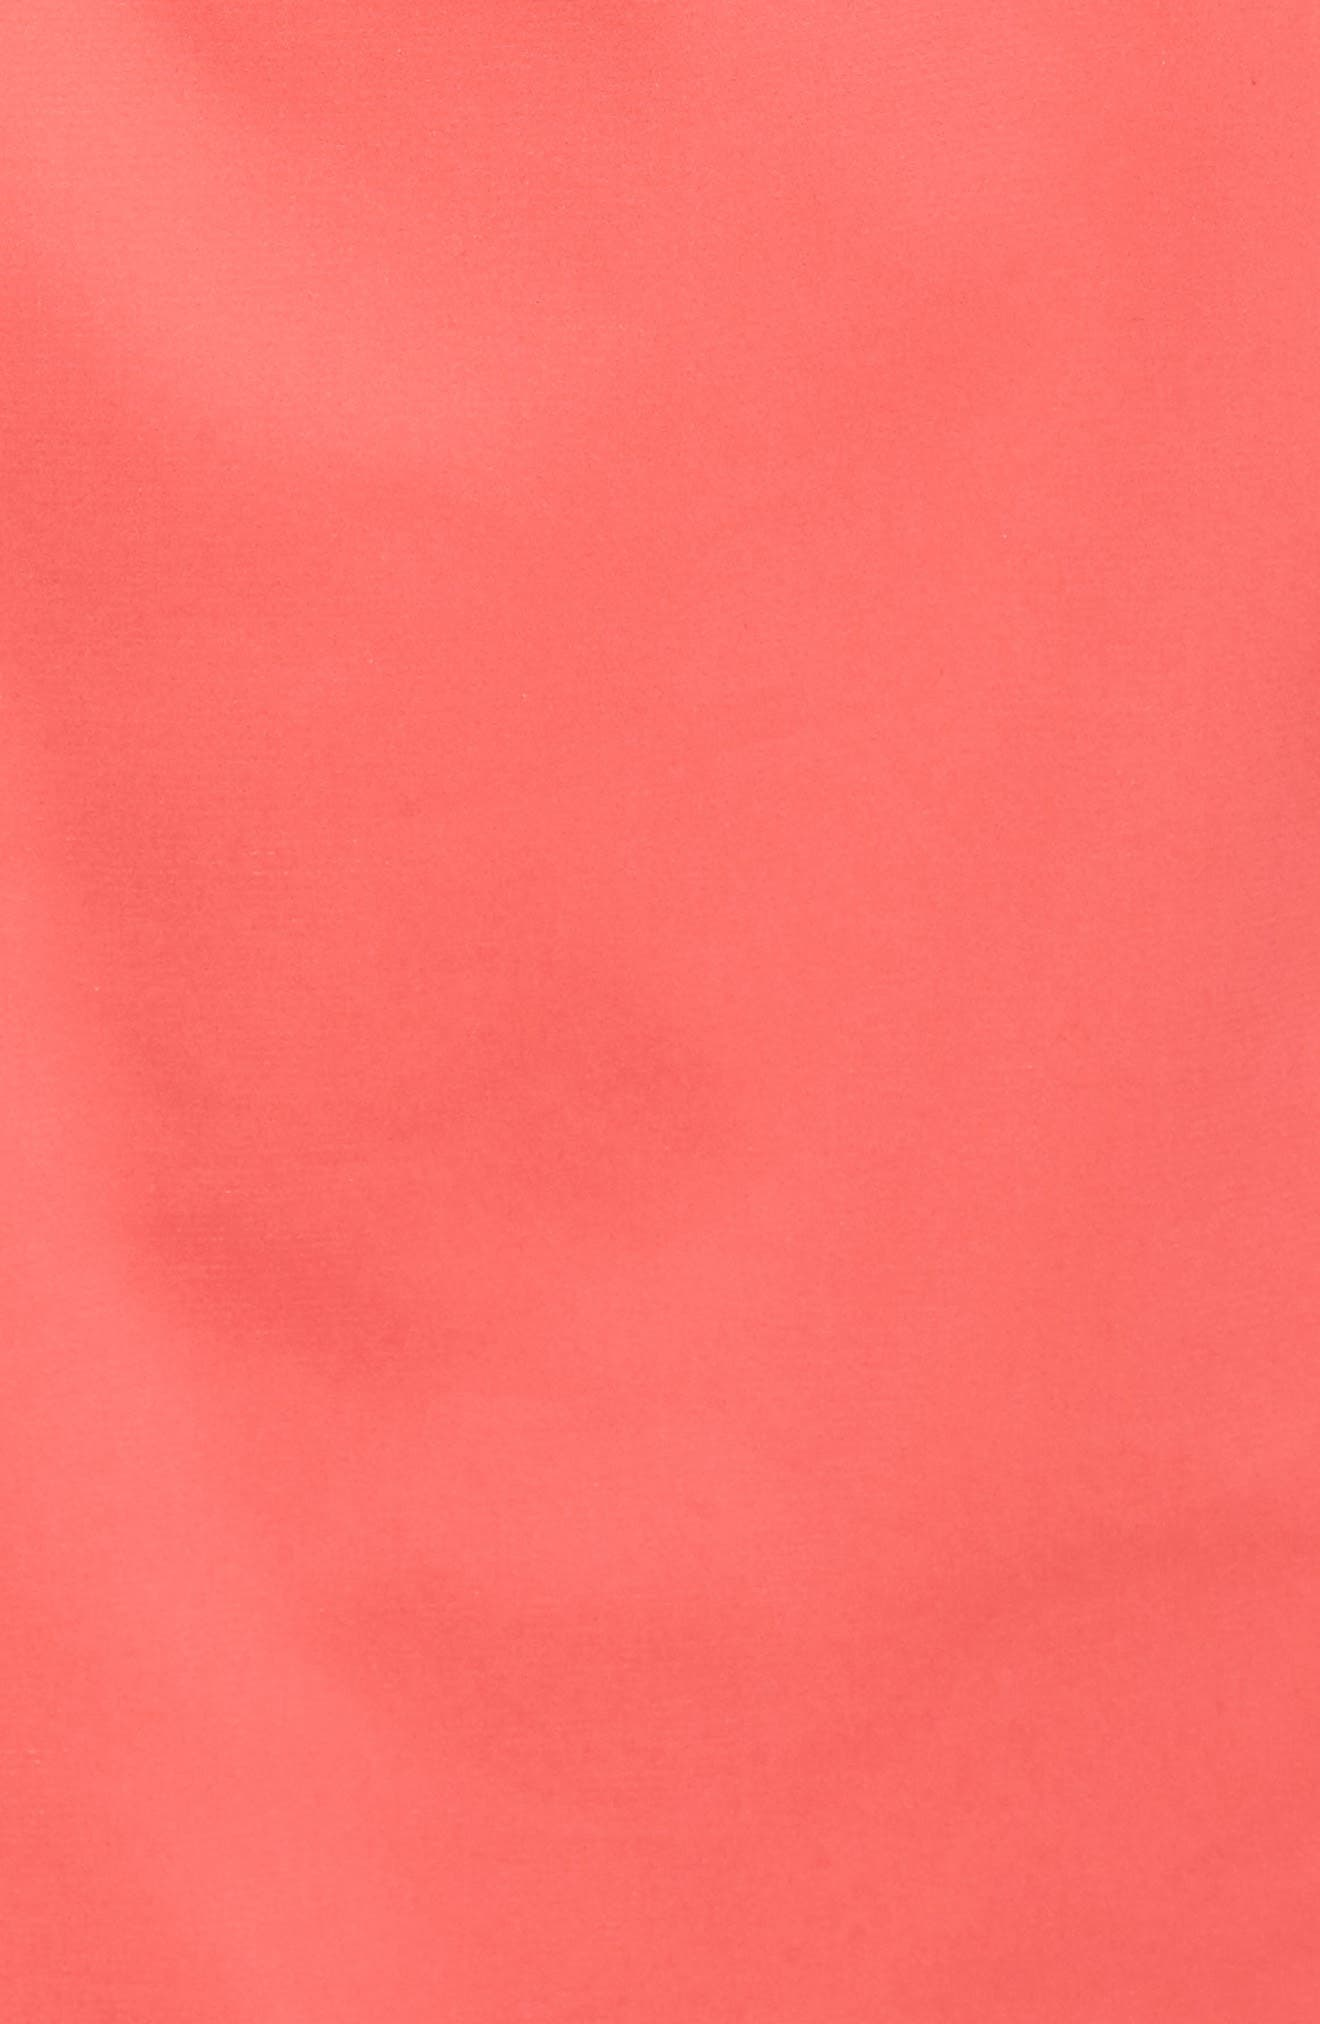 Scalloped A-Line Dress,                             Alternate thumbnail 5, color,                             Strawberry Pink